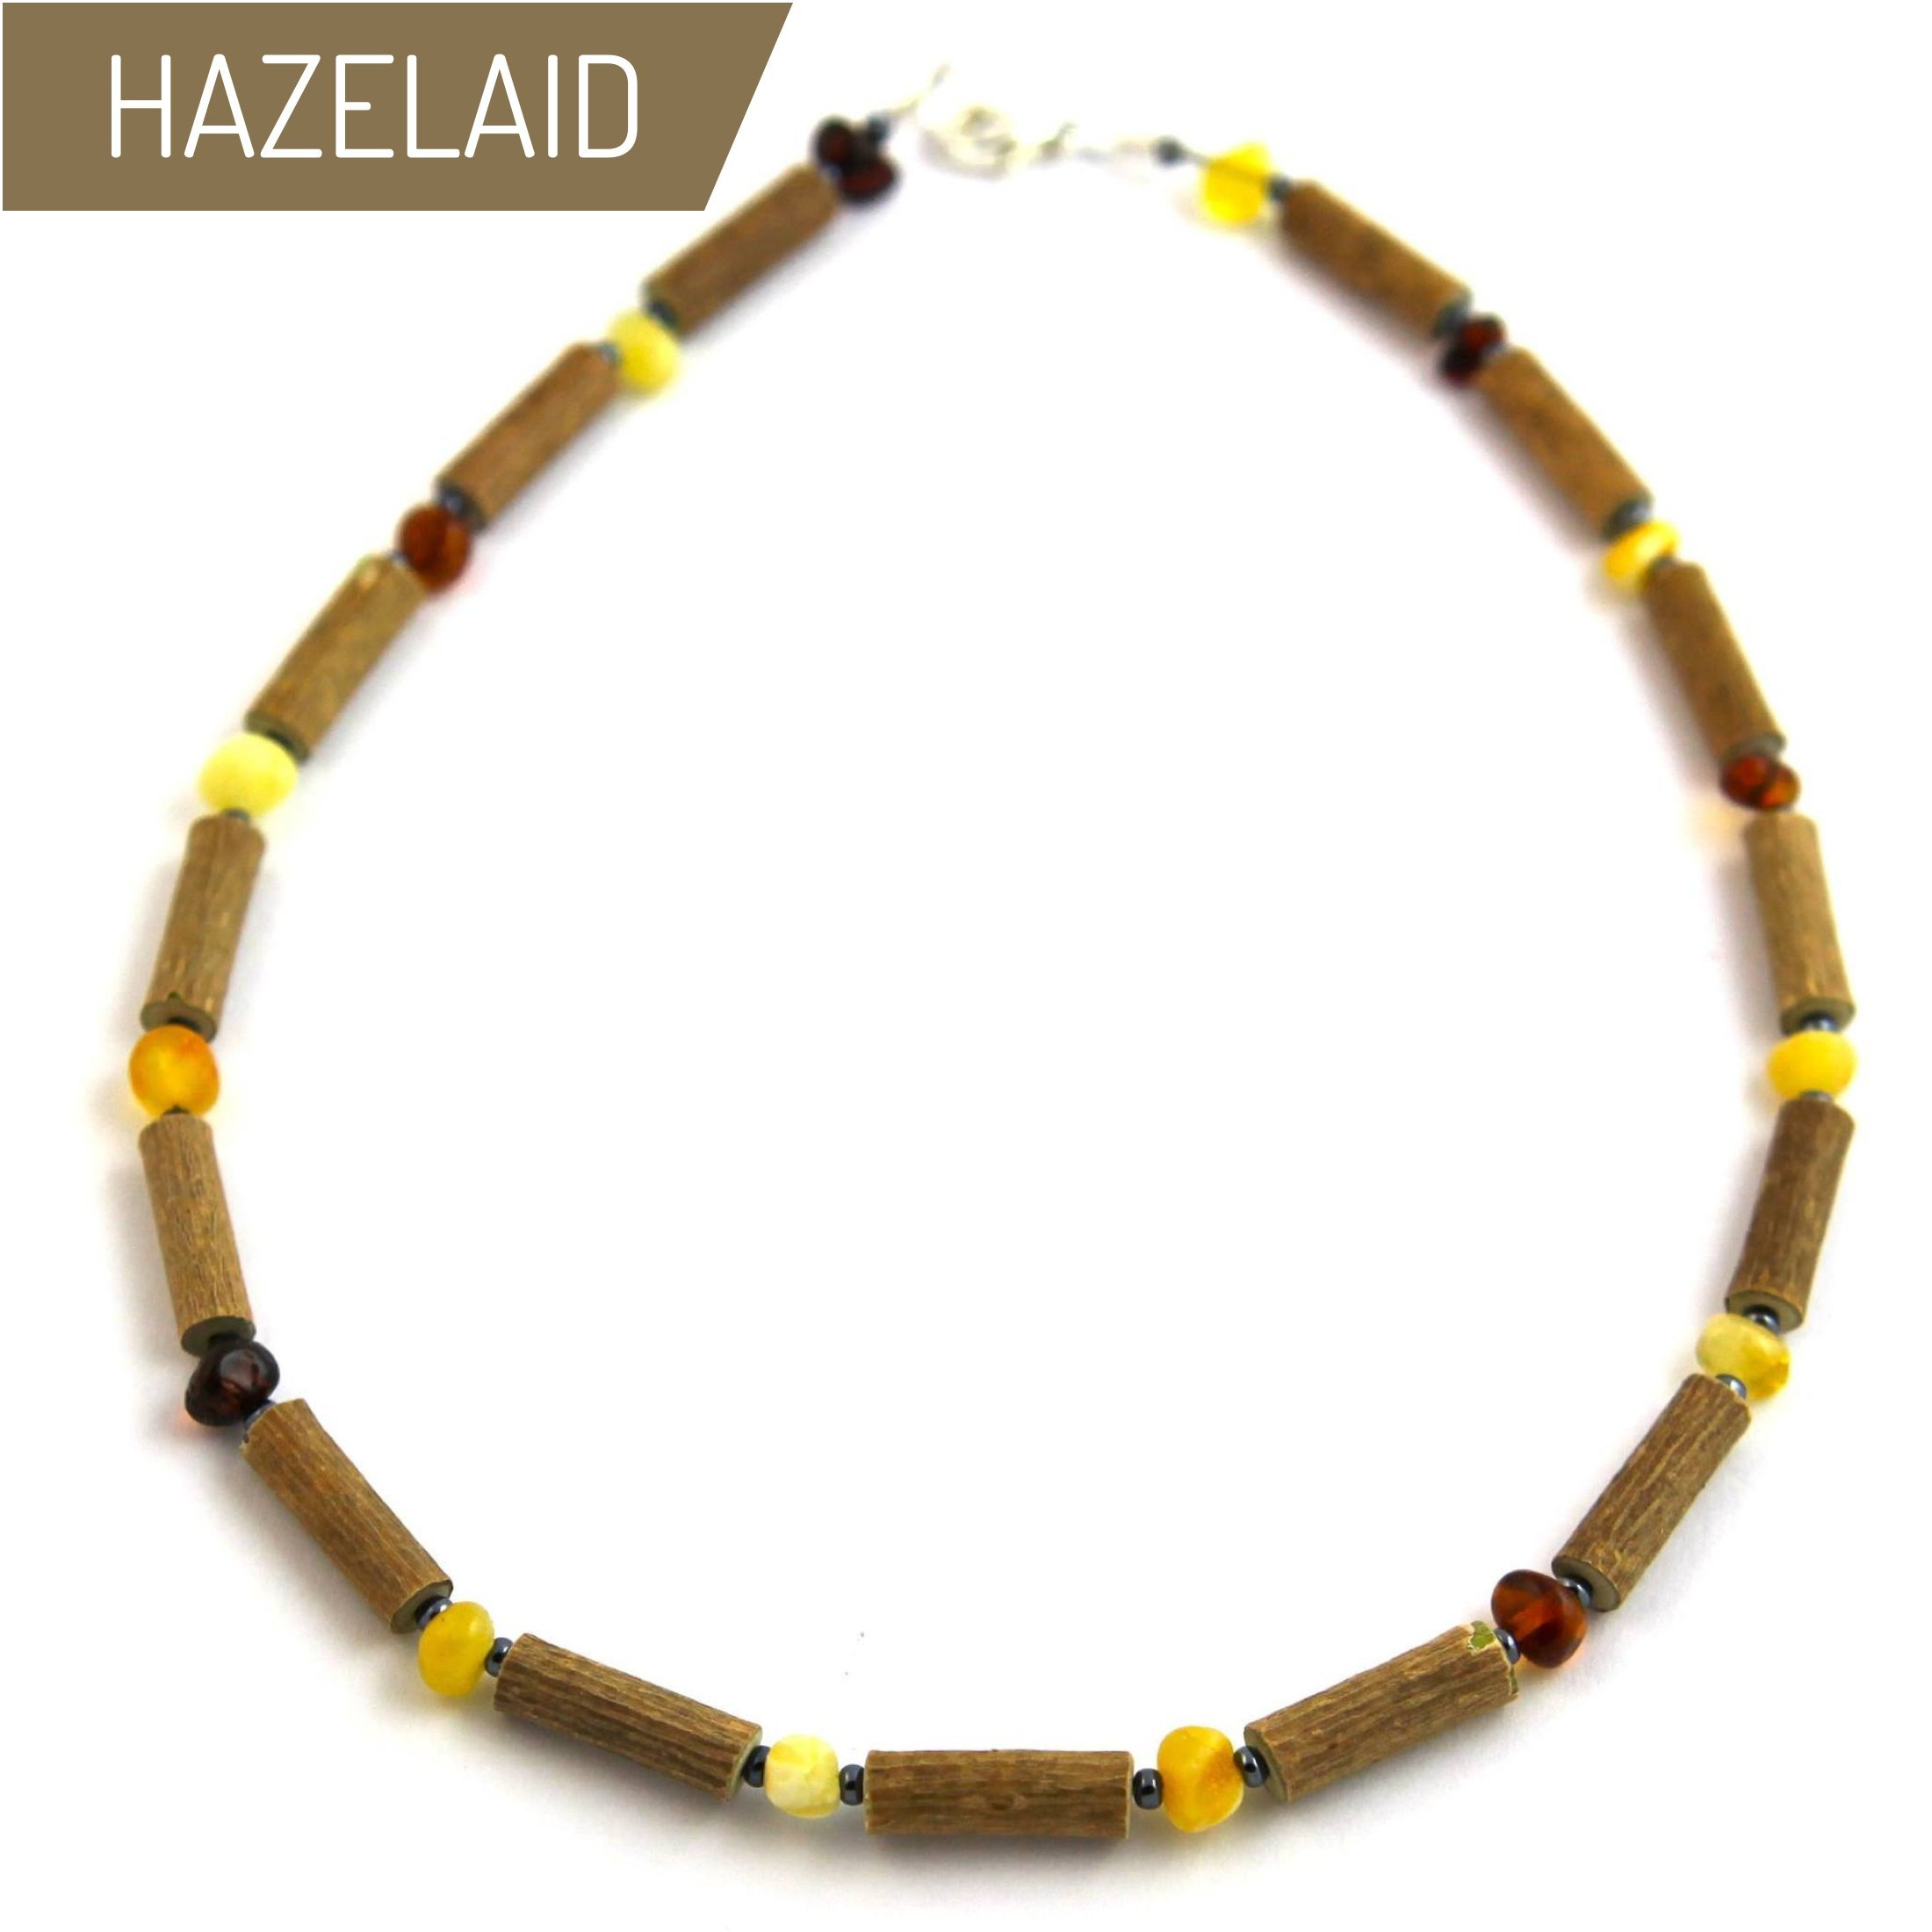 Hazelaid (TM) Child Hazelwood-Amber Necklace - 11'' Multicolored by HAZELAID